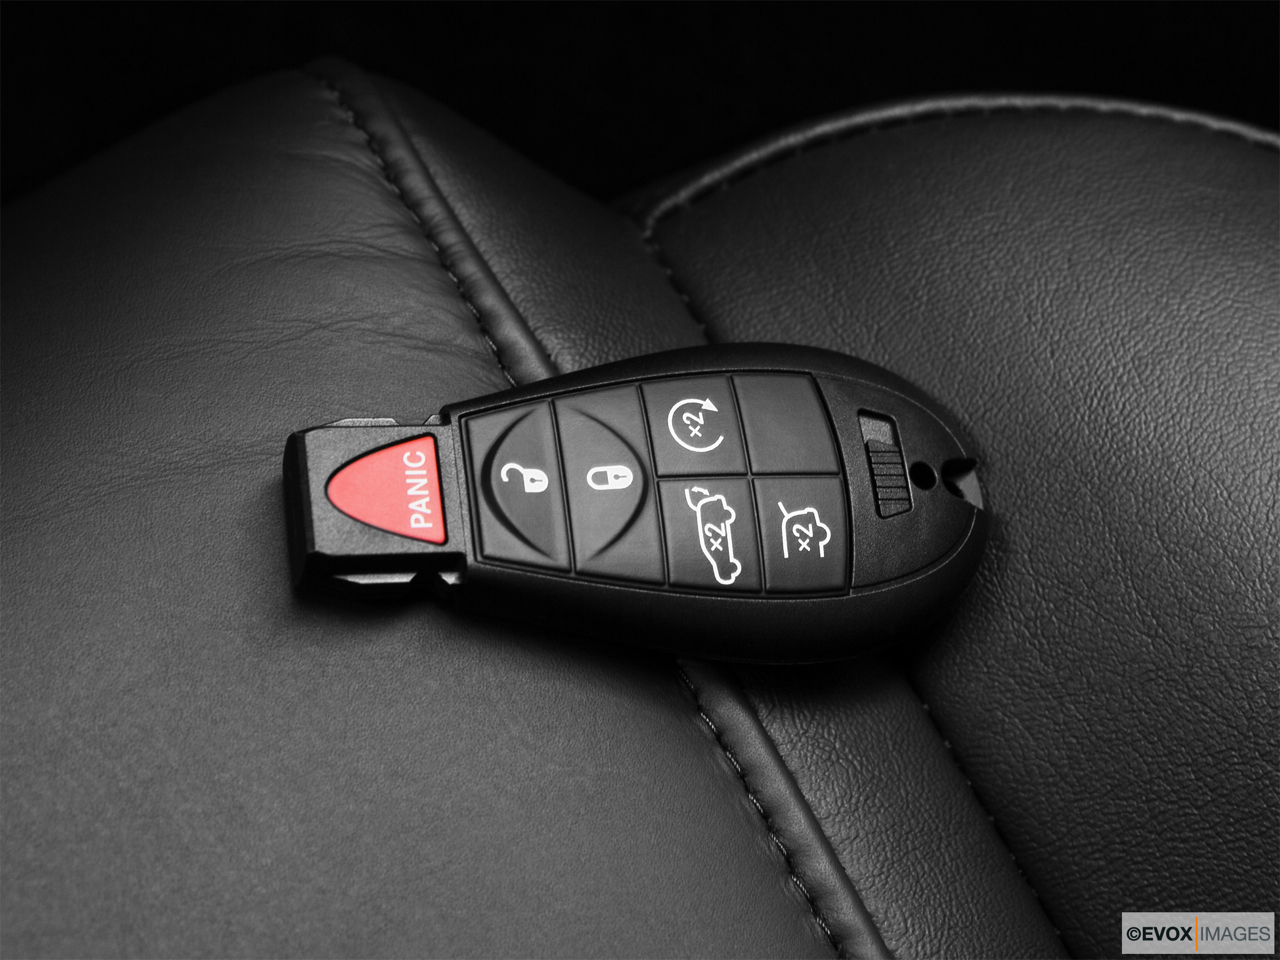 2010 Jeep Commander Limited Key fob on driver's seat.